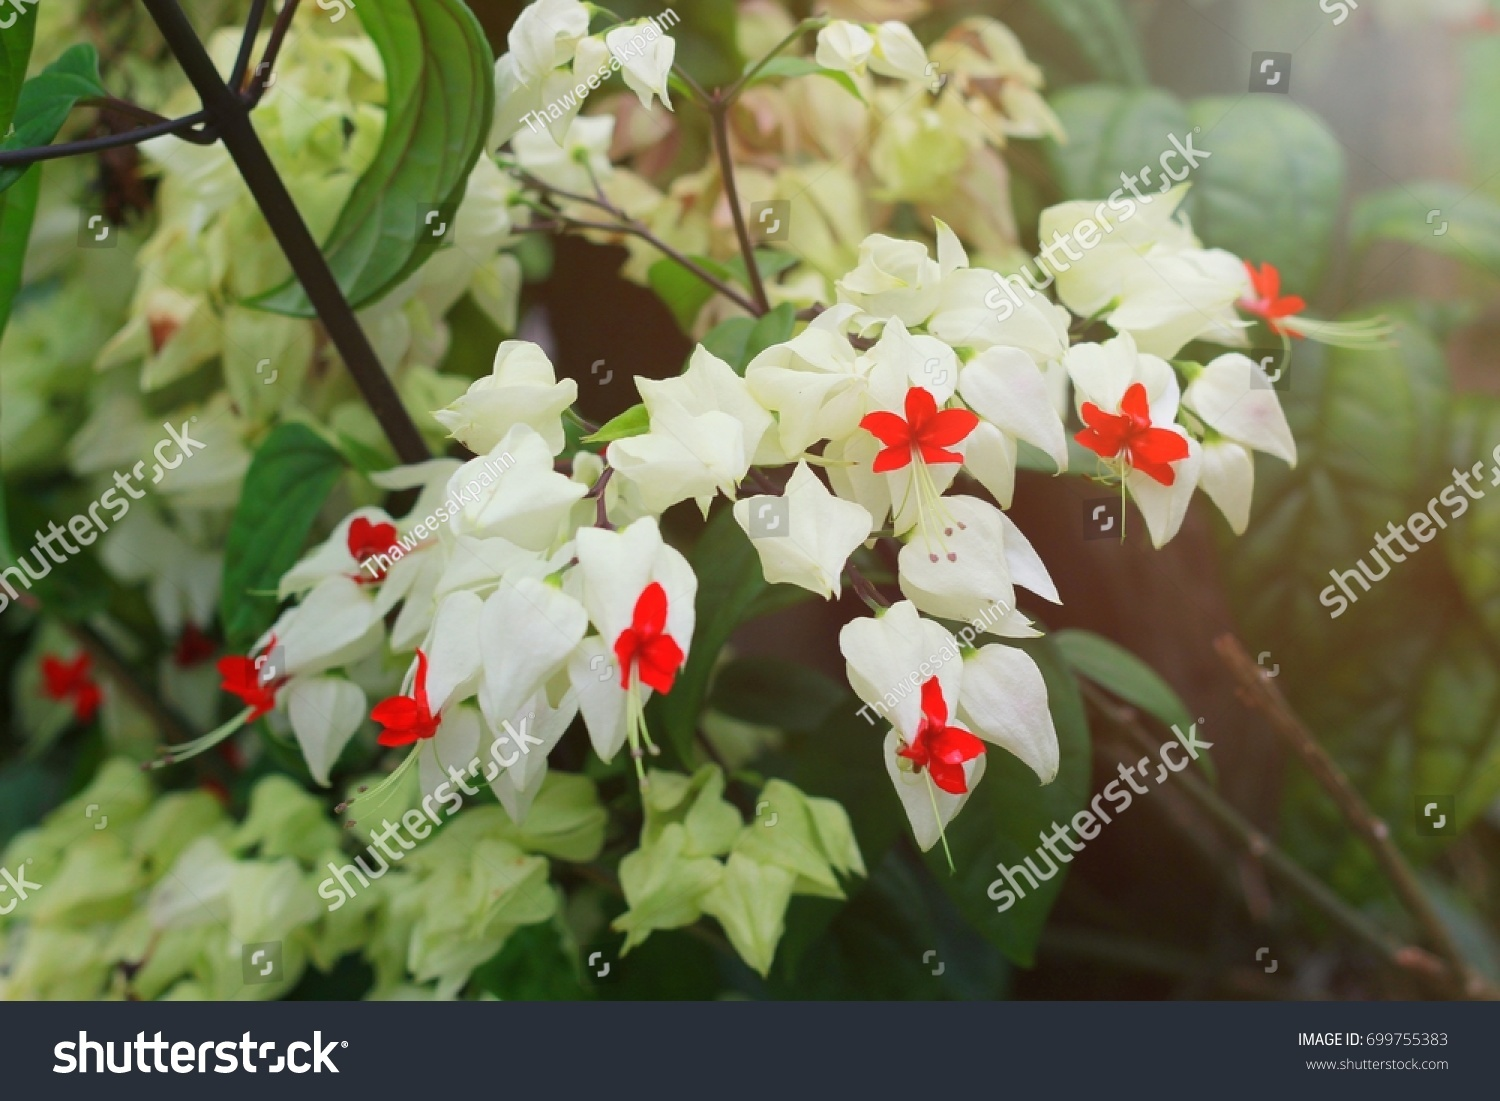 White bleeding heart flower stock photo royalty free 699755383 white bleeding heart flower izmirmasajfo